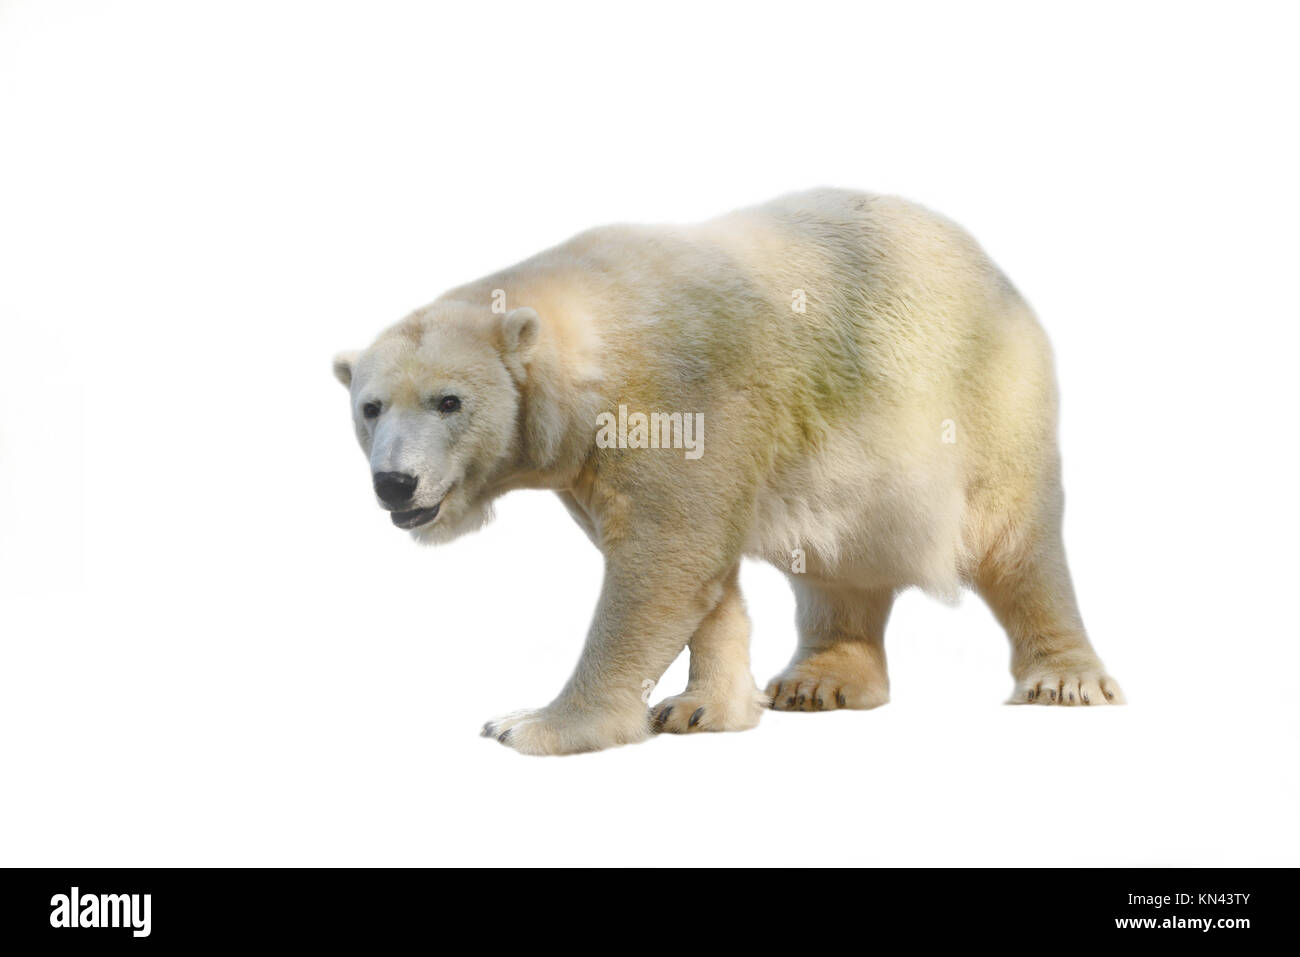 A polar bear in search of food. - Stock Image